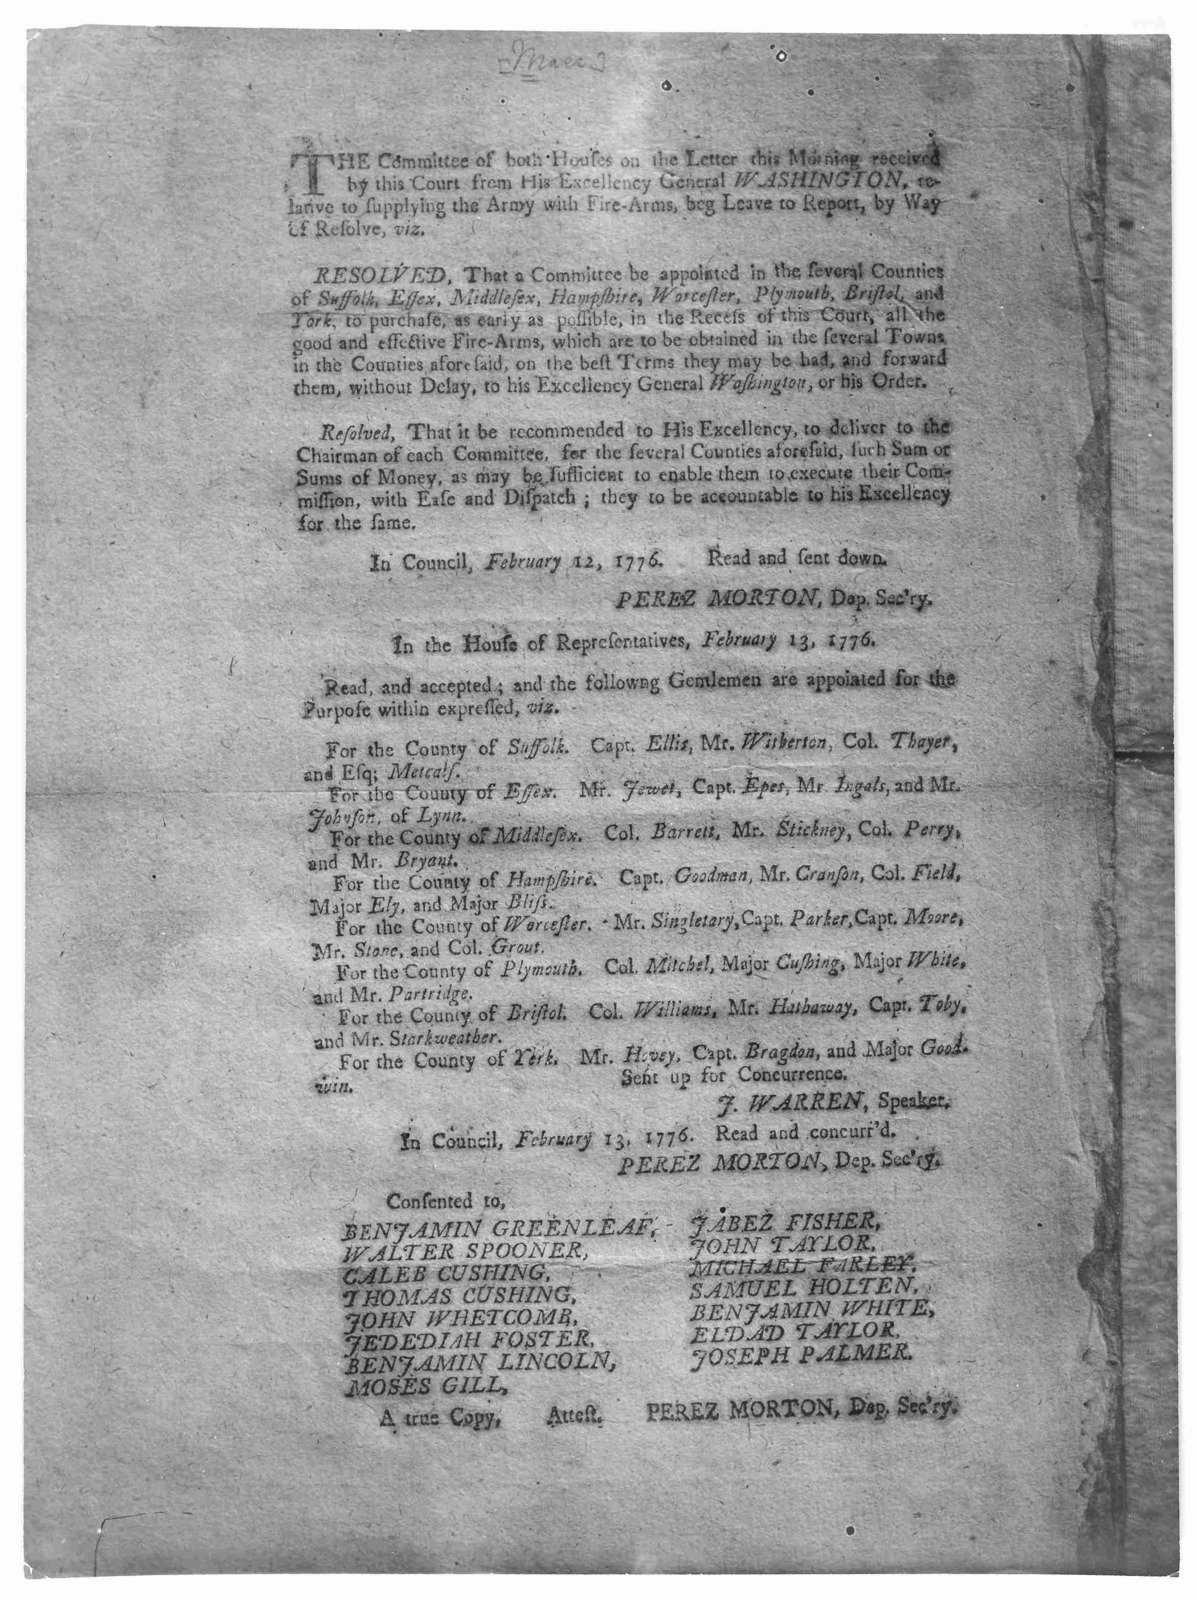 The Committee of both houses on the letter this morning received by this Court from His Excellency General Washington relative to supplying the army with fire-arms, beg leave to report by way of resolve: [That a committee be appointed to collect